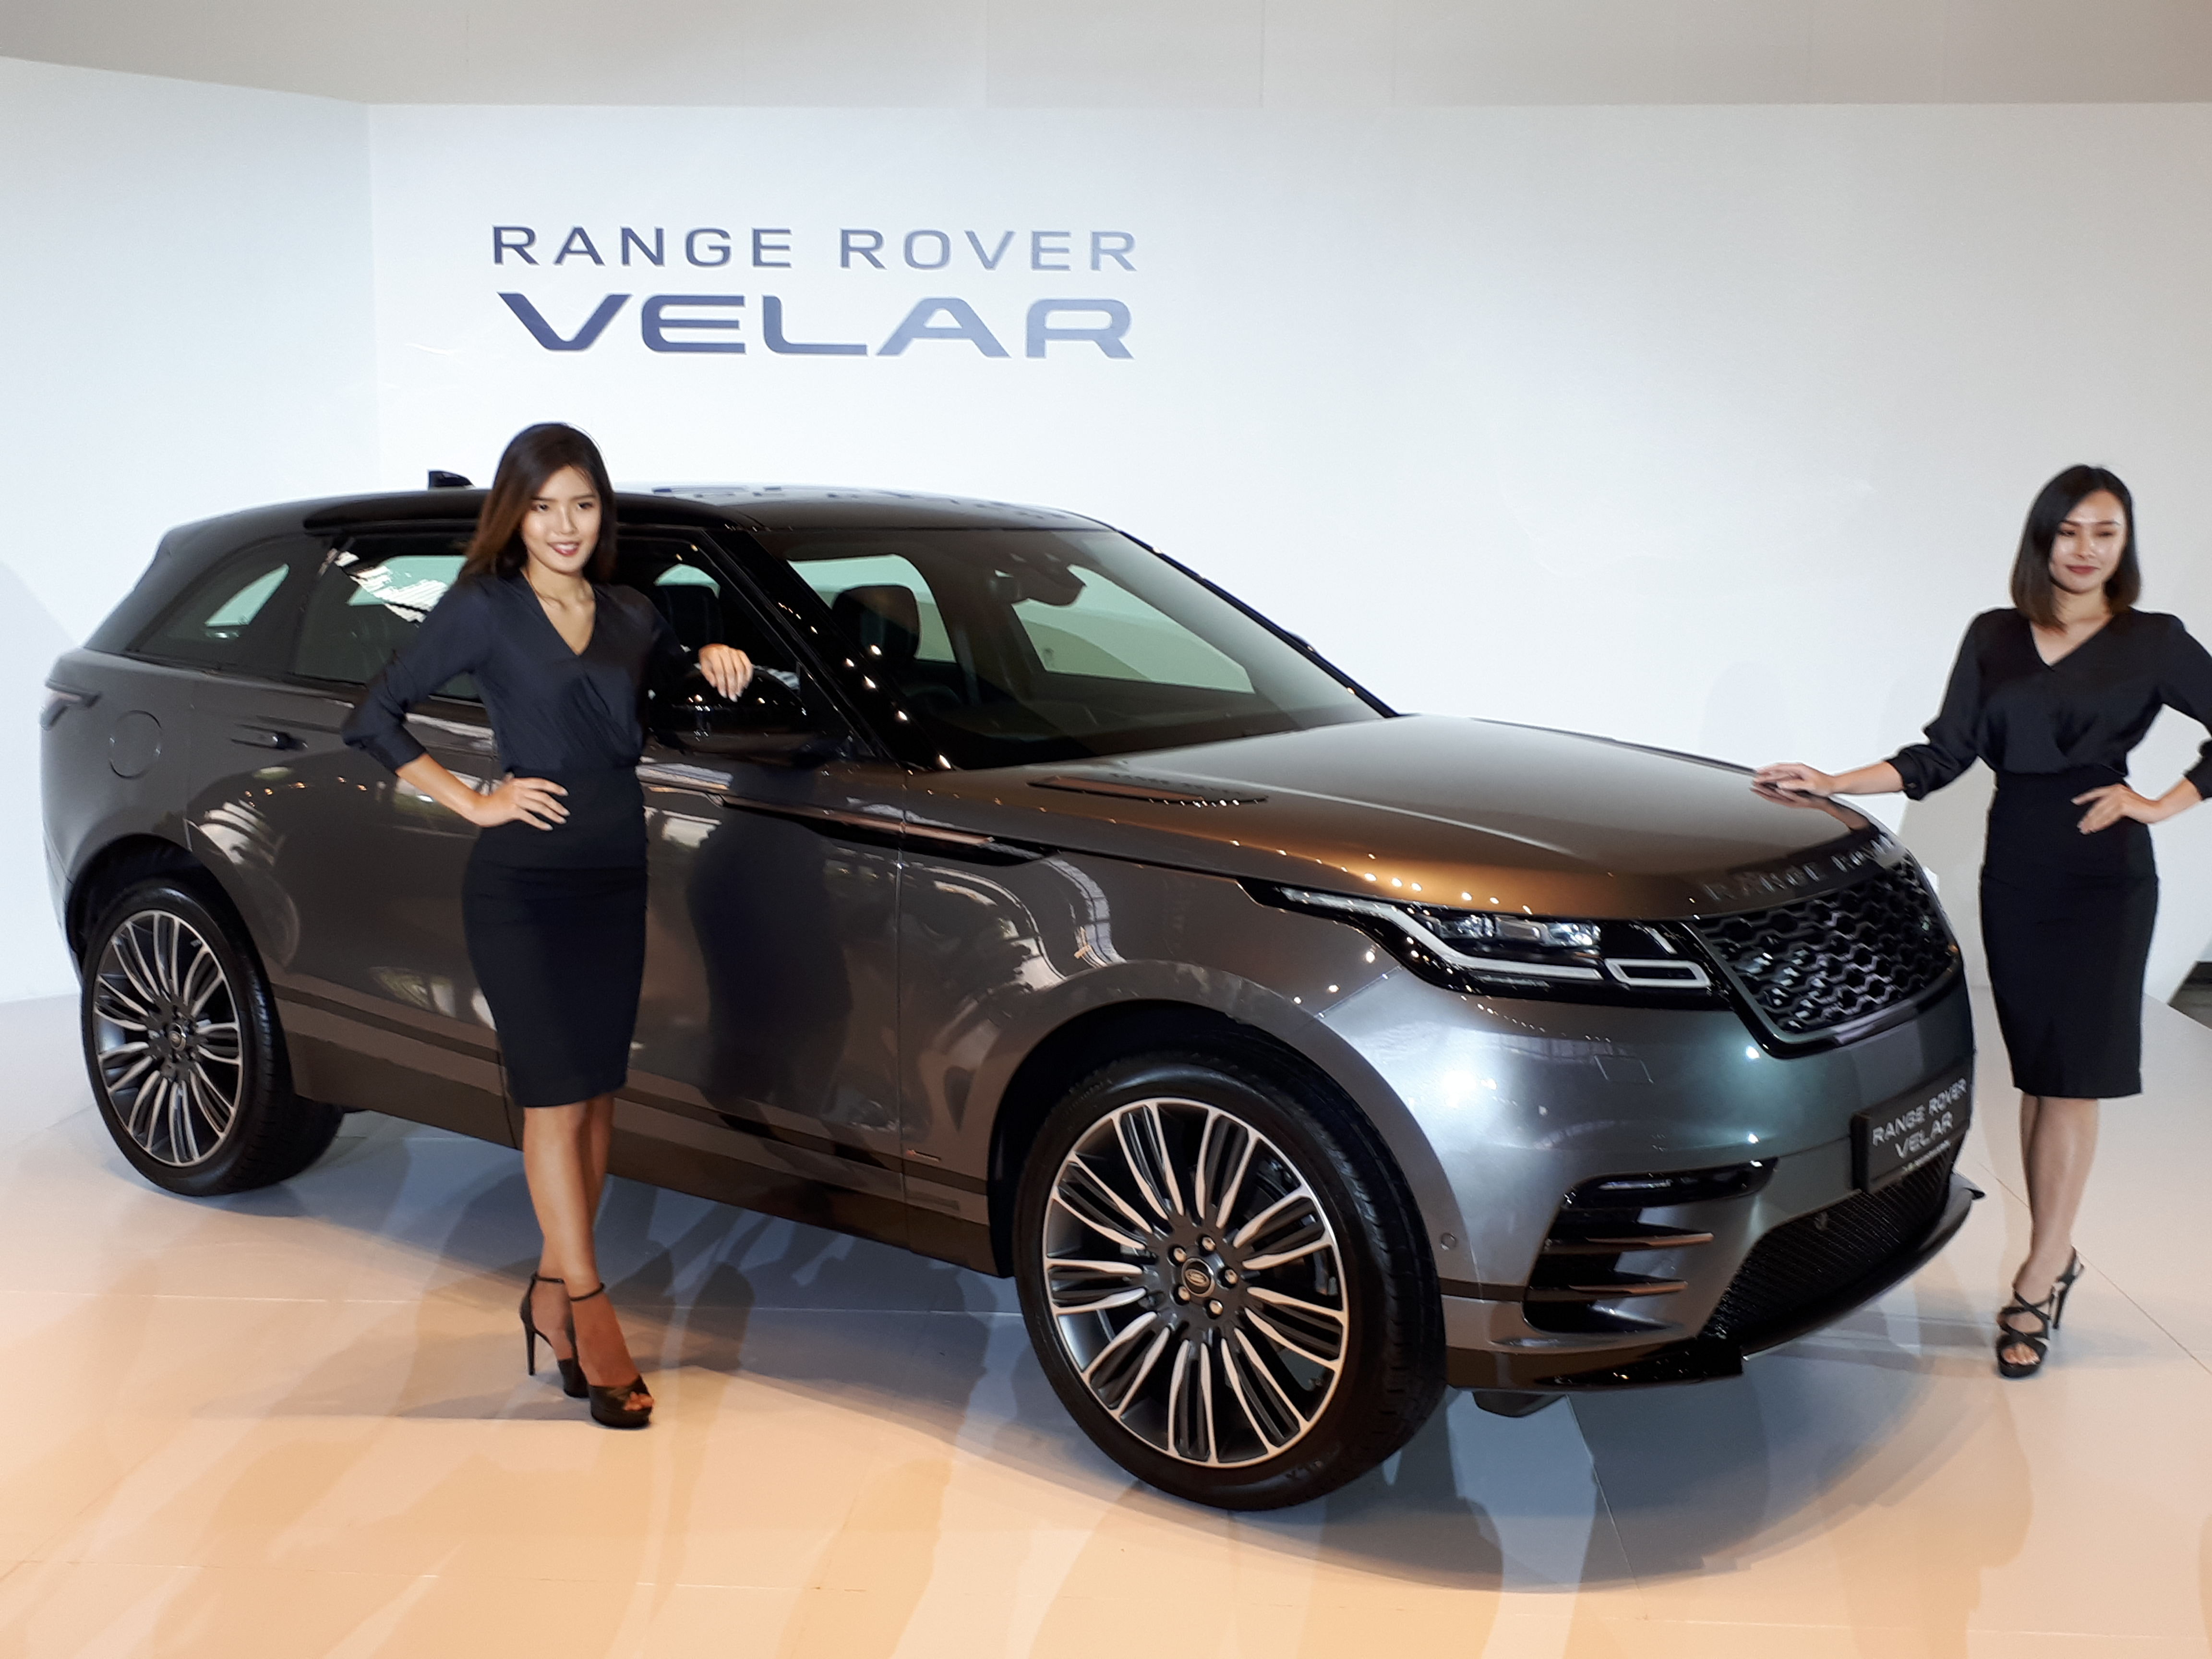 Range Rover Velar Officially Launched In Malaysia